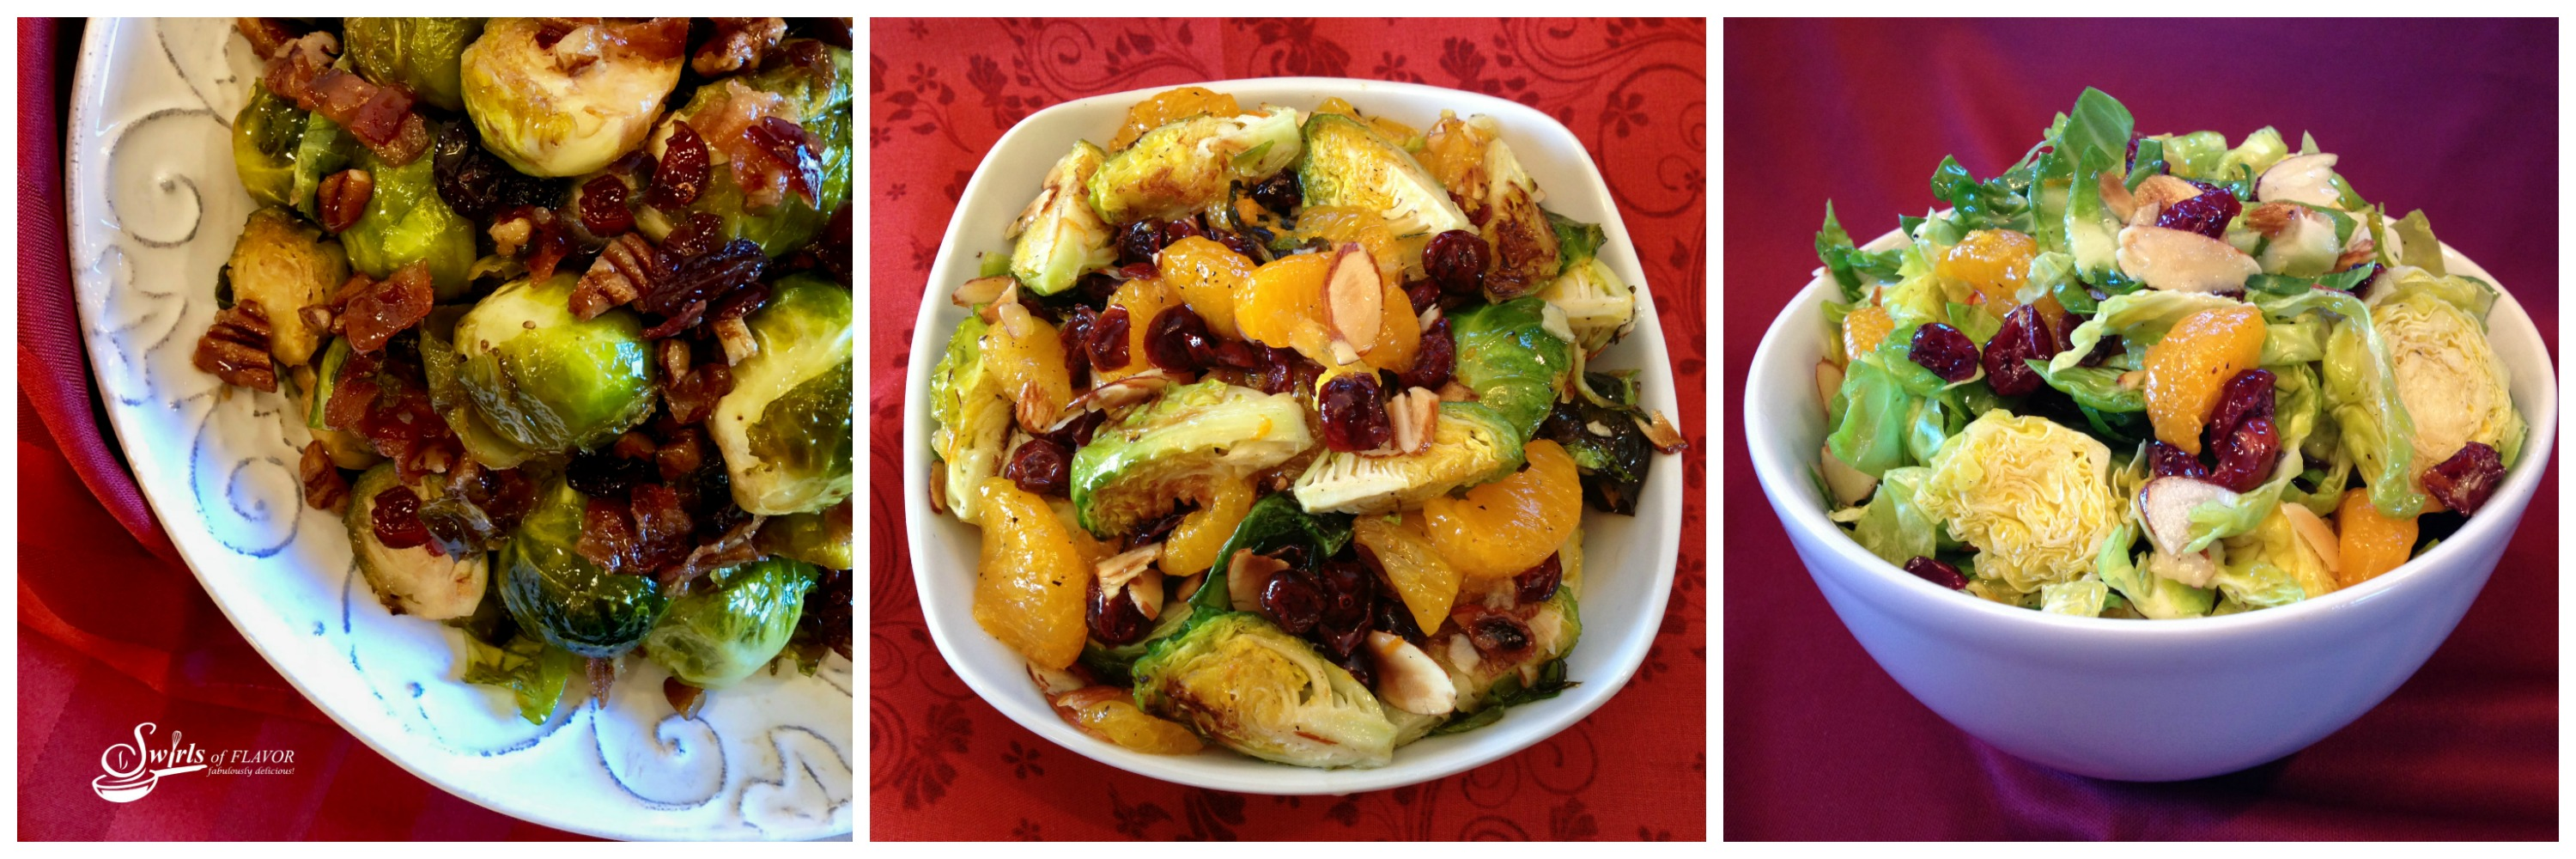 Three brussels sprouts recipes